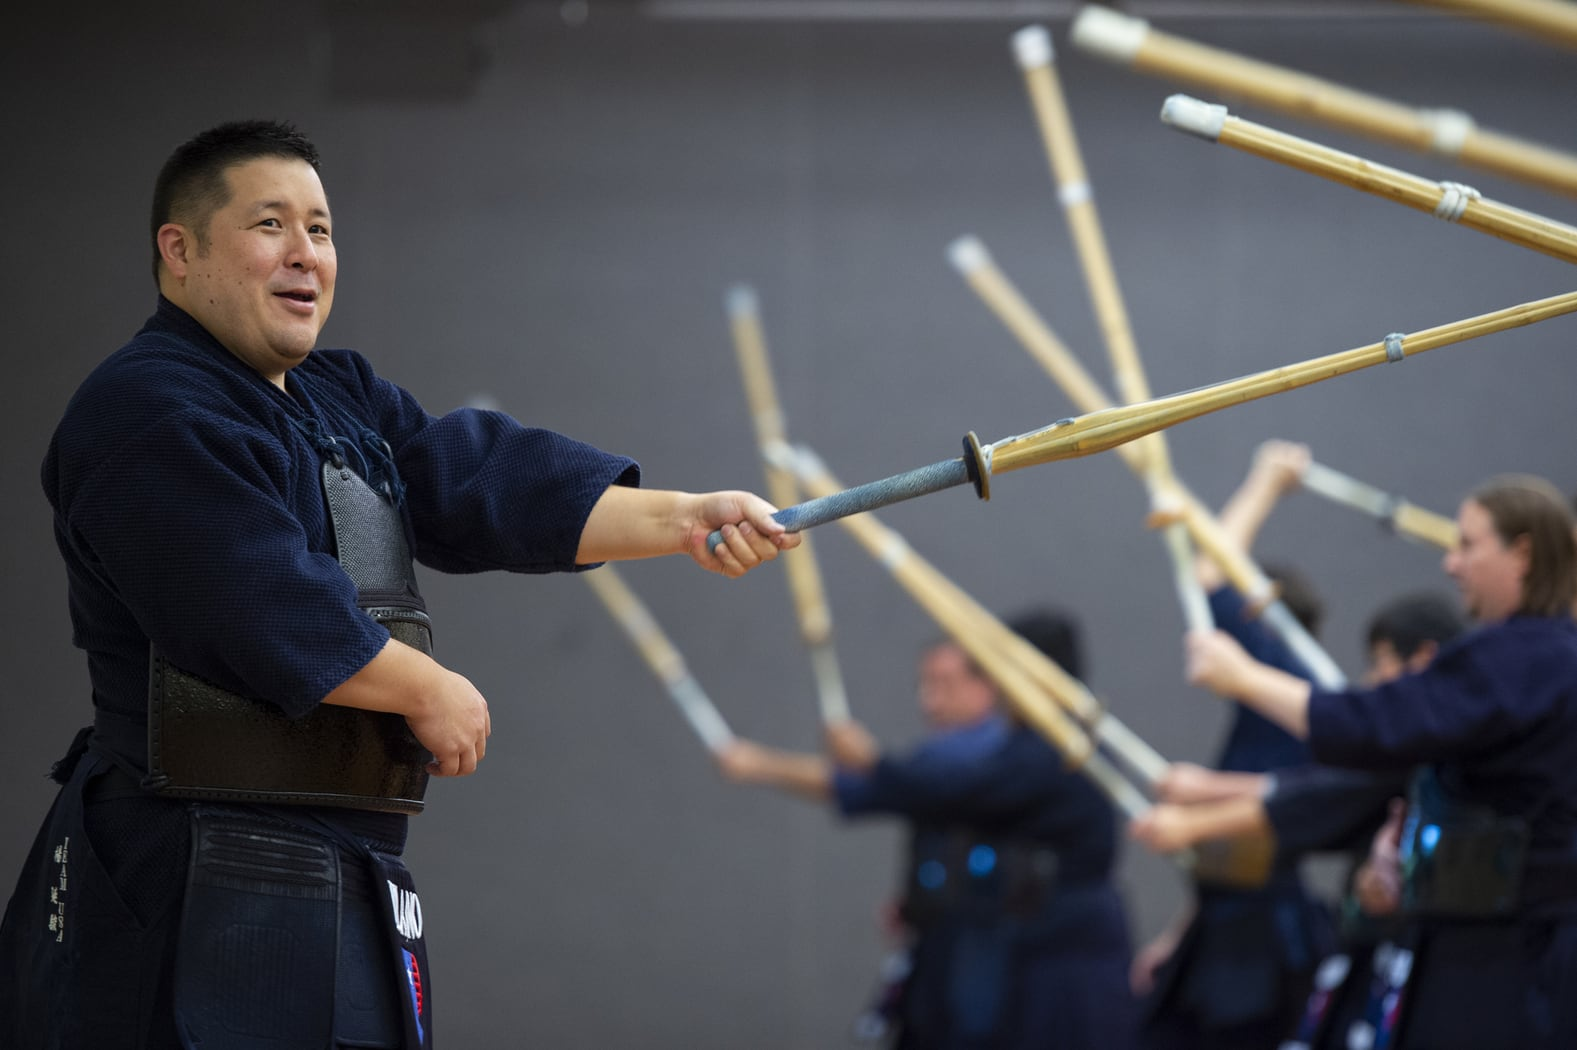 Kendo Training Session Picture Background